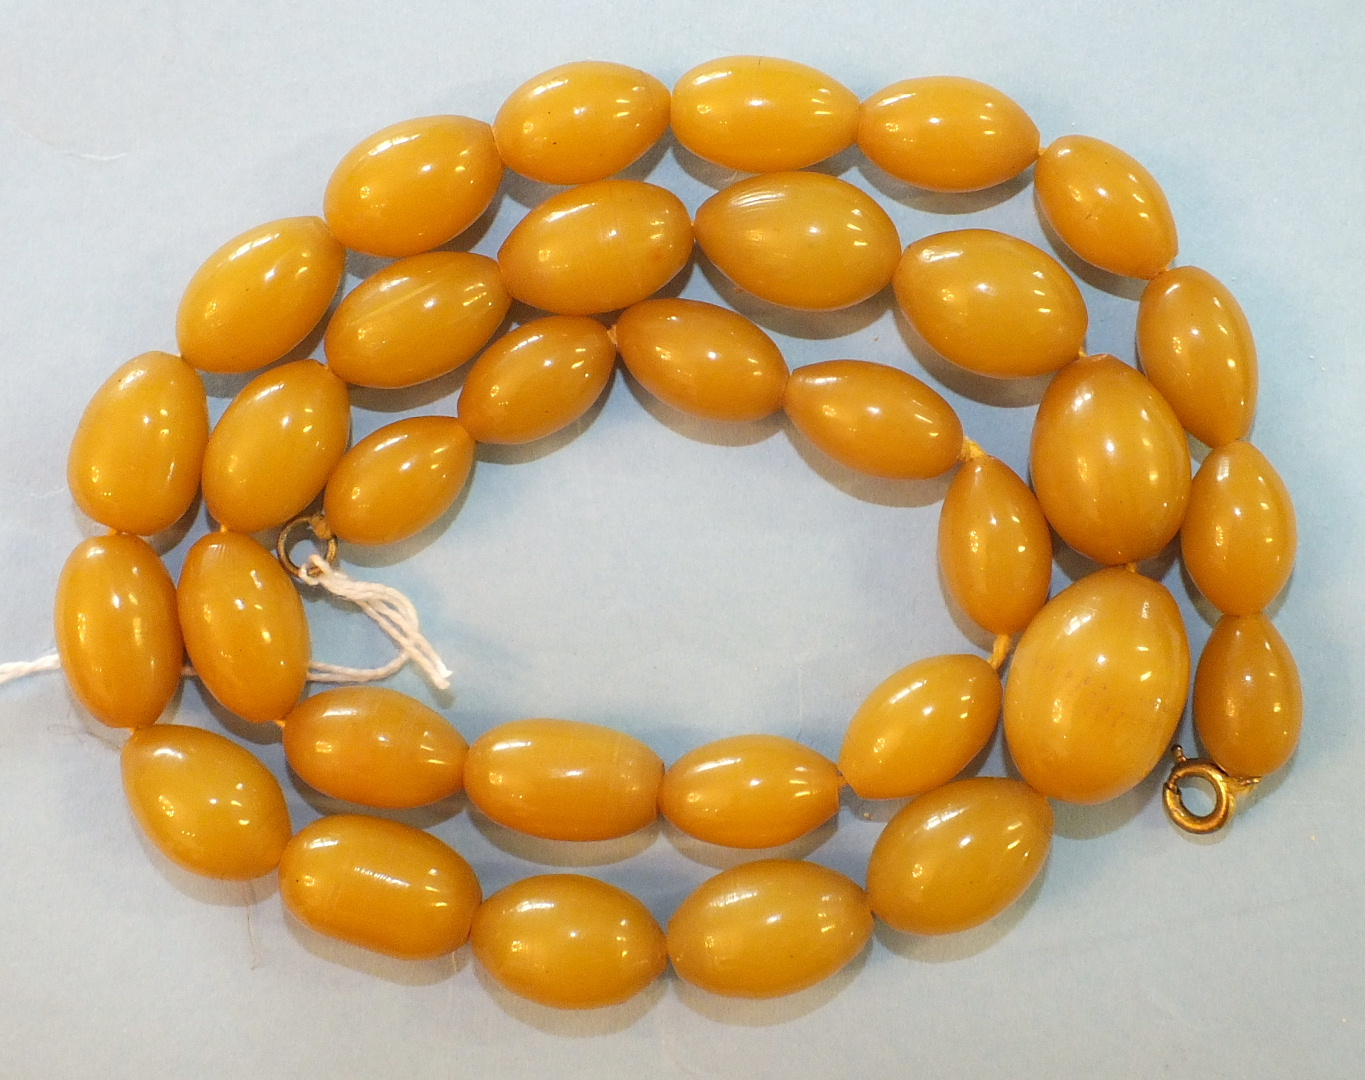 Lot 163 - A string of yellow amber-type Bakelite graduated beads.